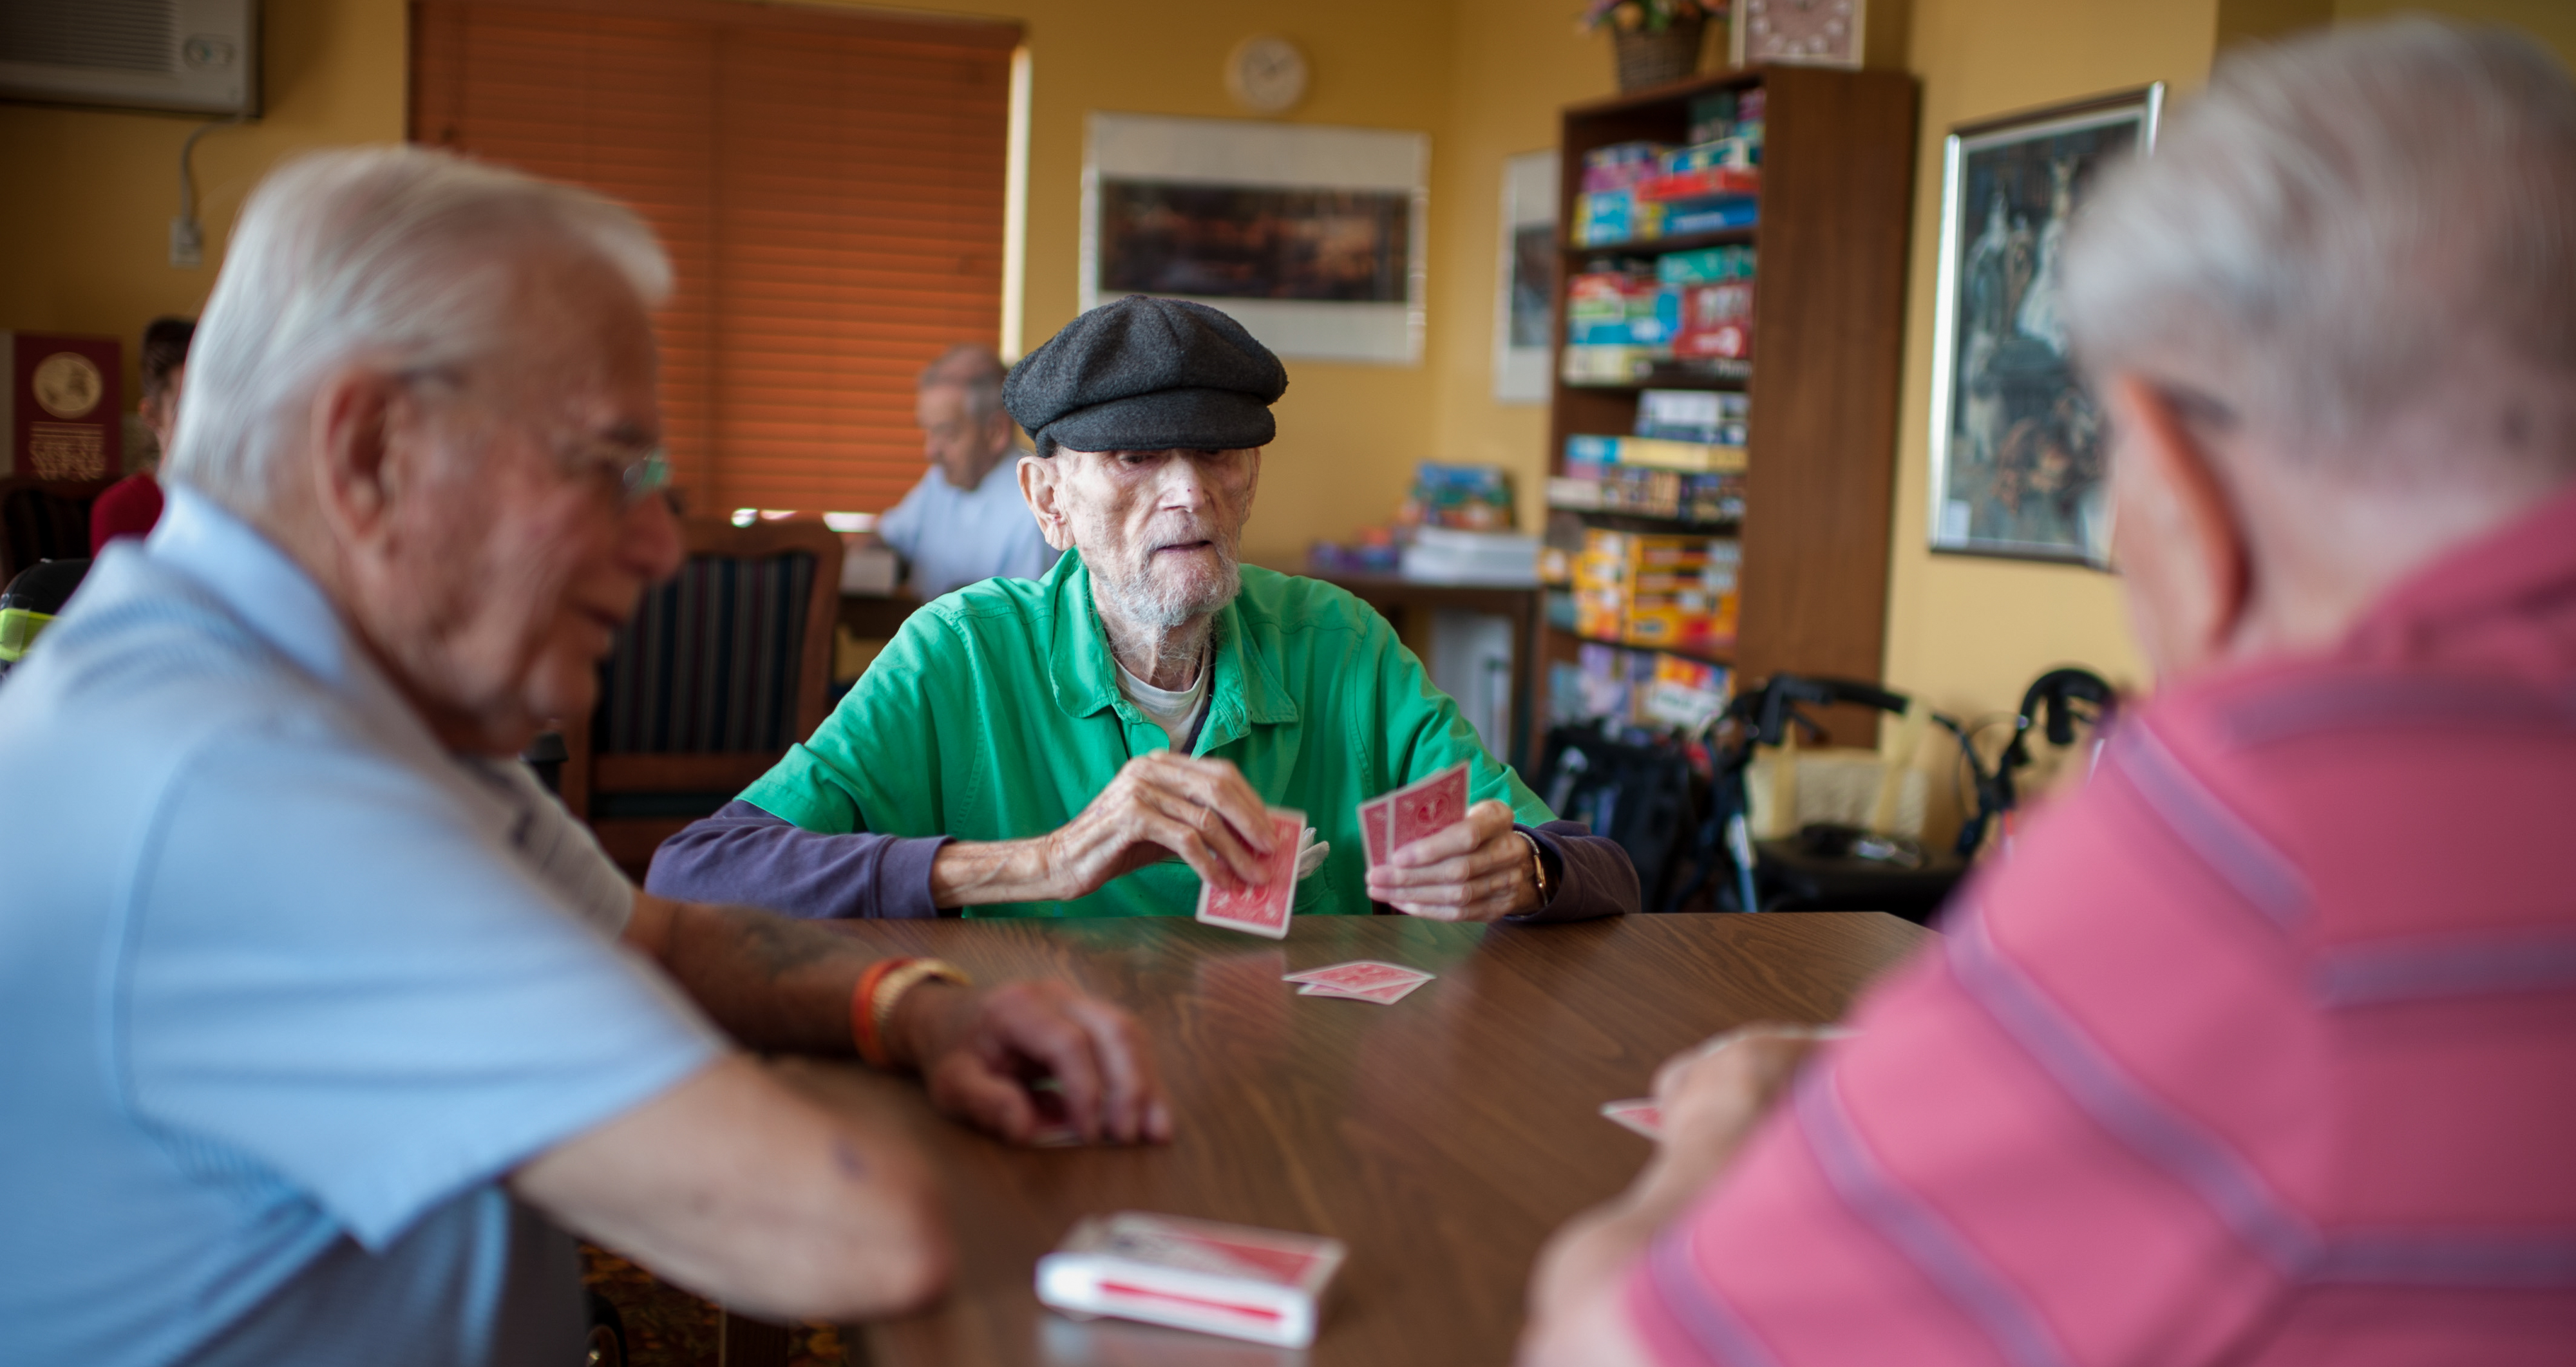 Why learning new things is important for older adults with memory loss